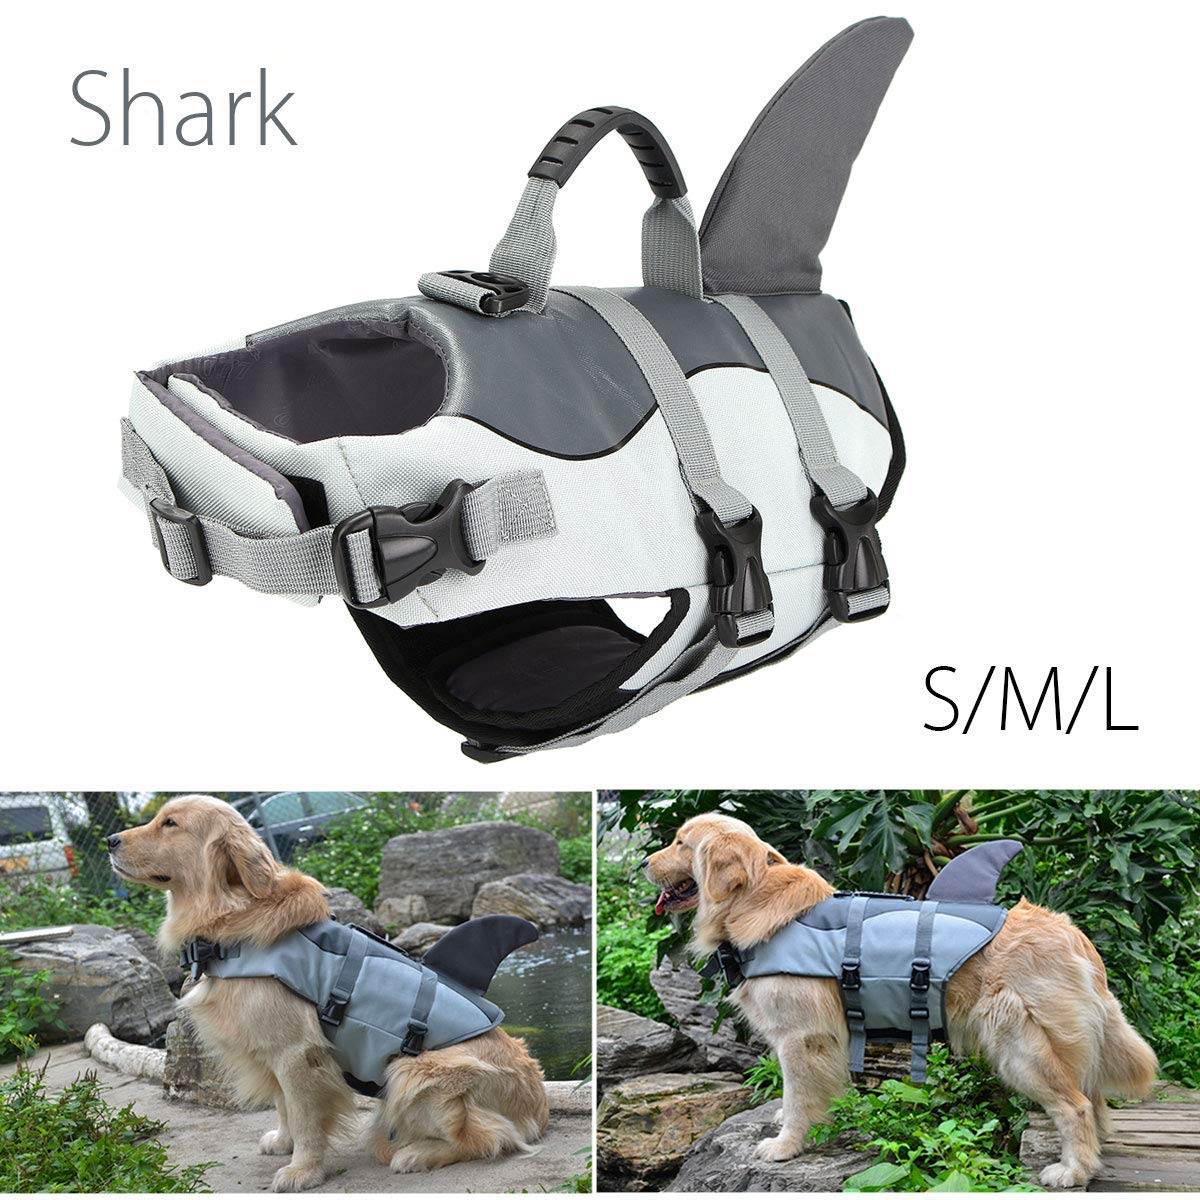 LIULINCUN Buoyancy Aid for Dogs, Dog Lifejacket, Pet Swimsuit for Pets, Dog Flotation Device, Safety Wear for Small Swimwear,Gray,L